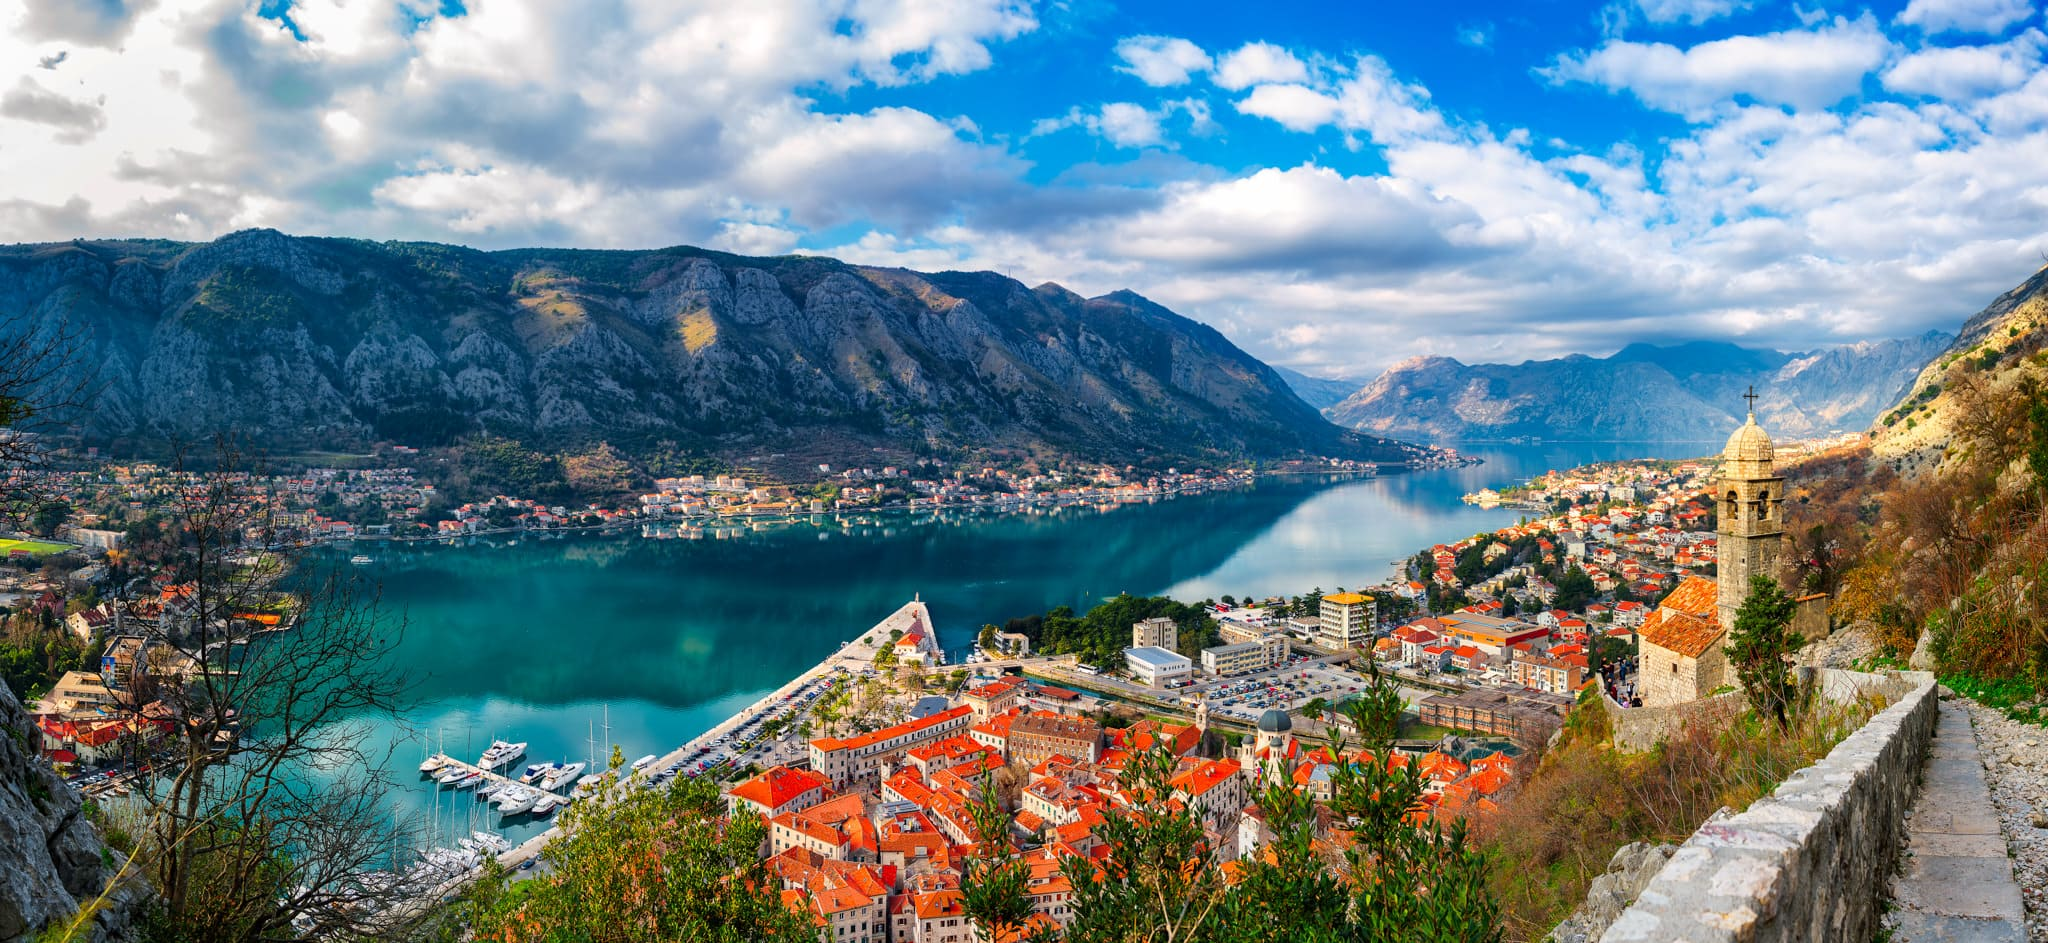 Kotor Panorama Daylight